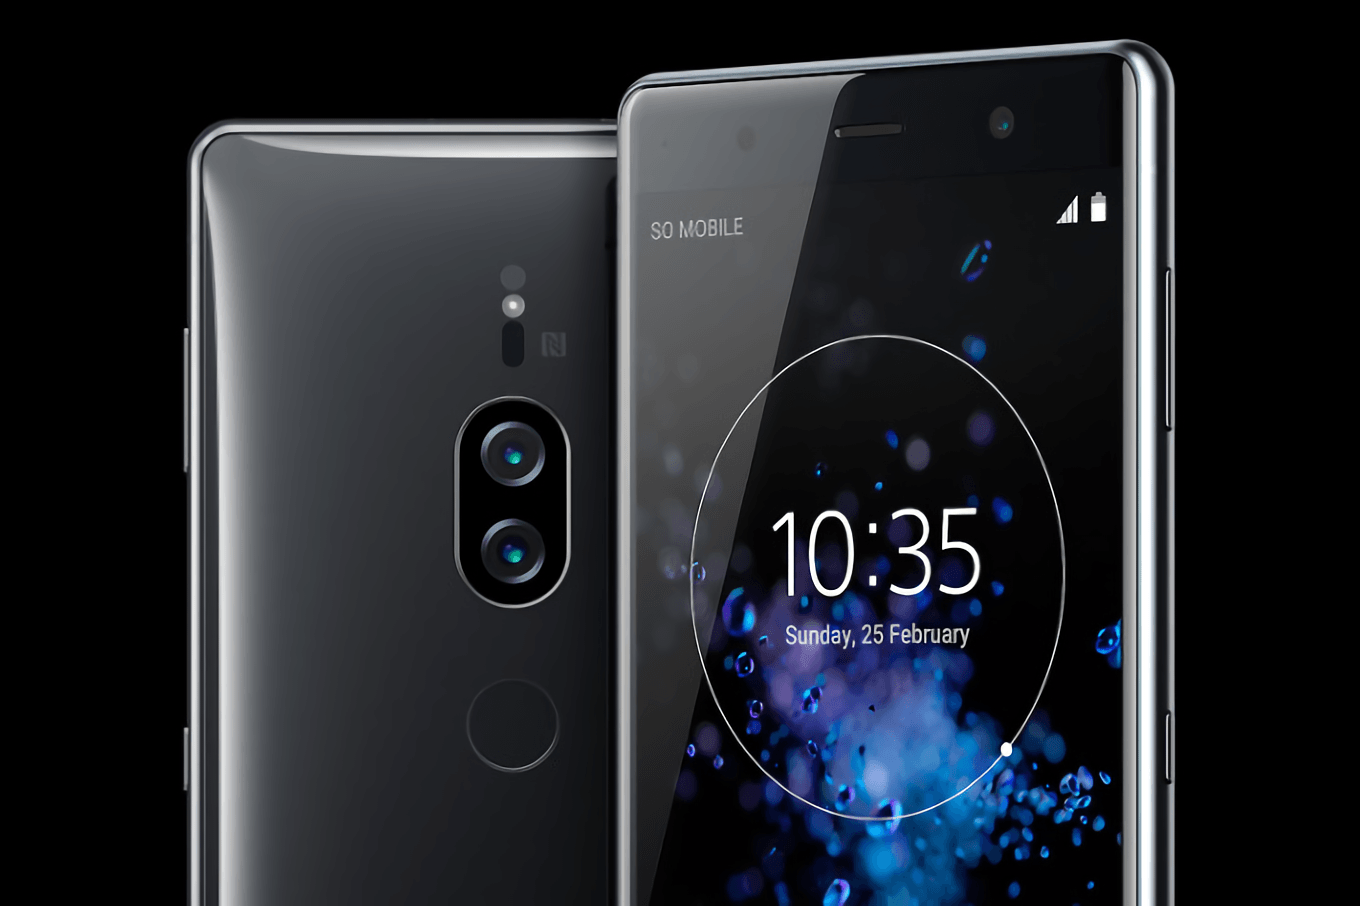 Sony Xz2 Premium Unveiled With Dual Camera 4k Hdr